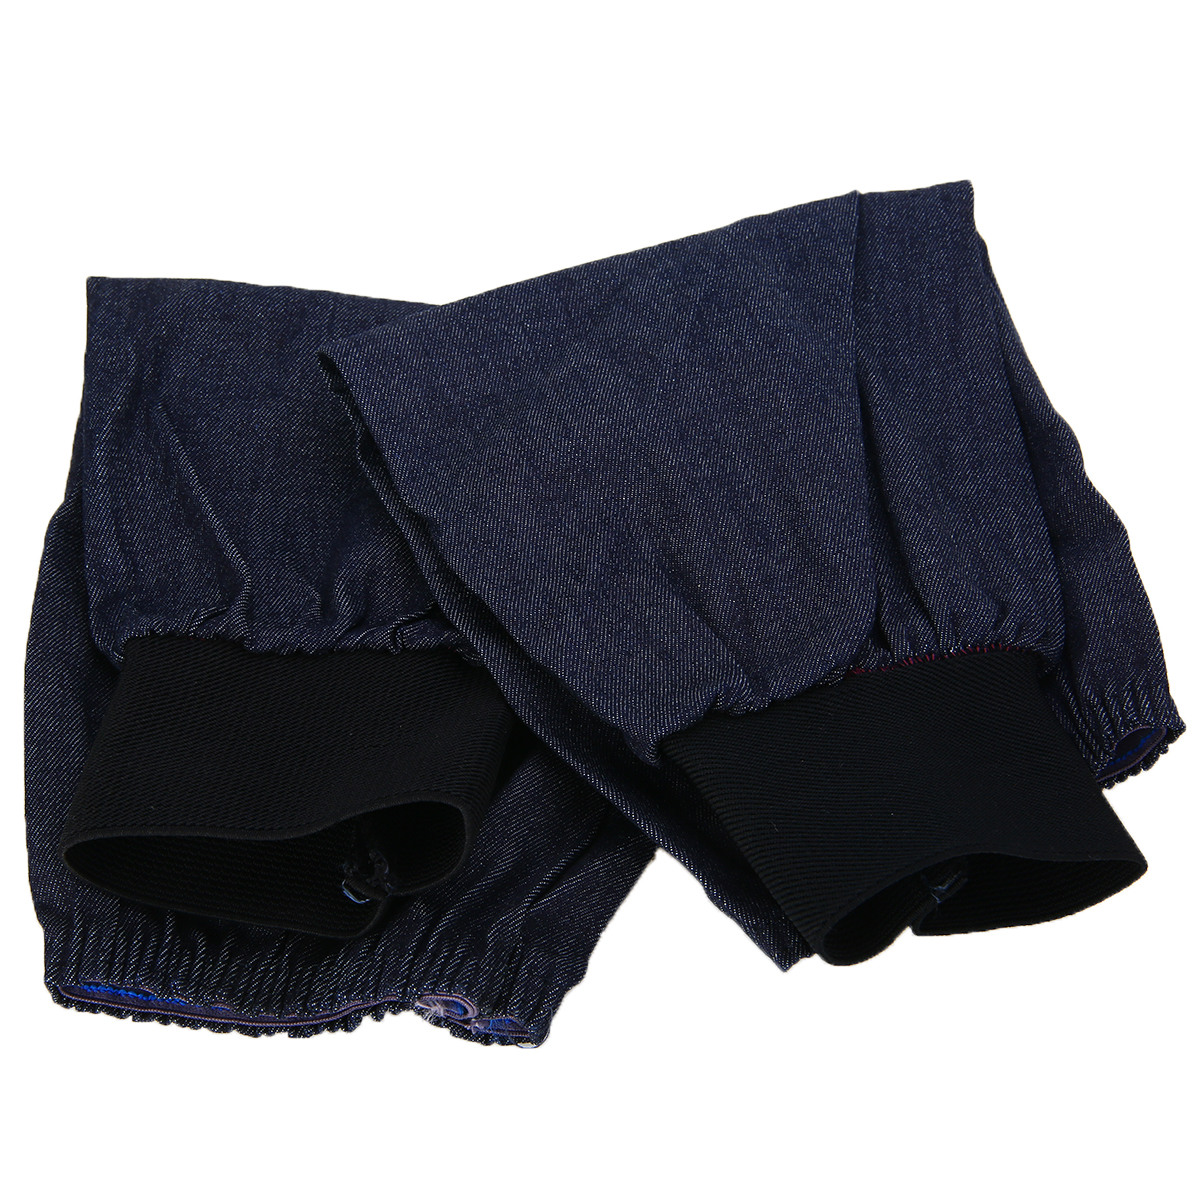 NEW 1 Pair Welding Protection Sleeves Denim Blue Welding Lengthen Arm Sleeves Denim Working Cutting Resistant Heat Protective